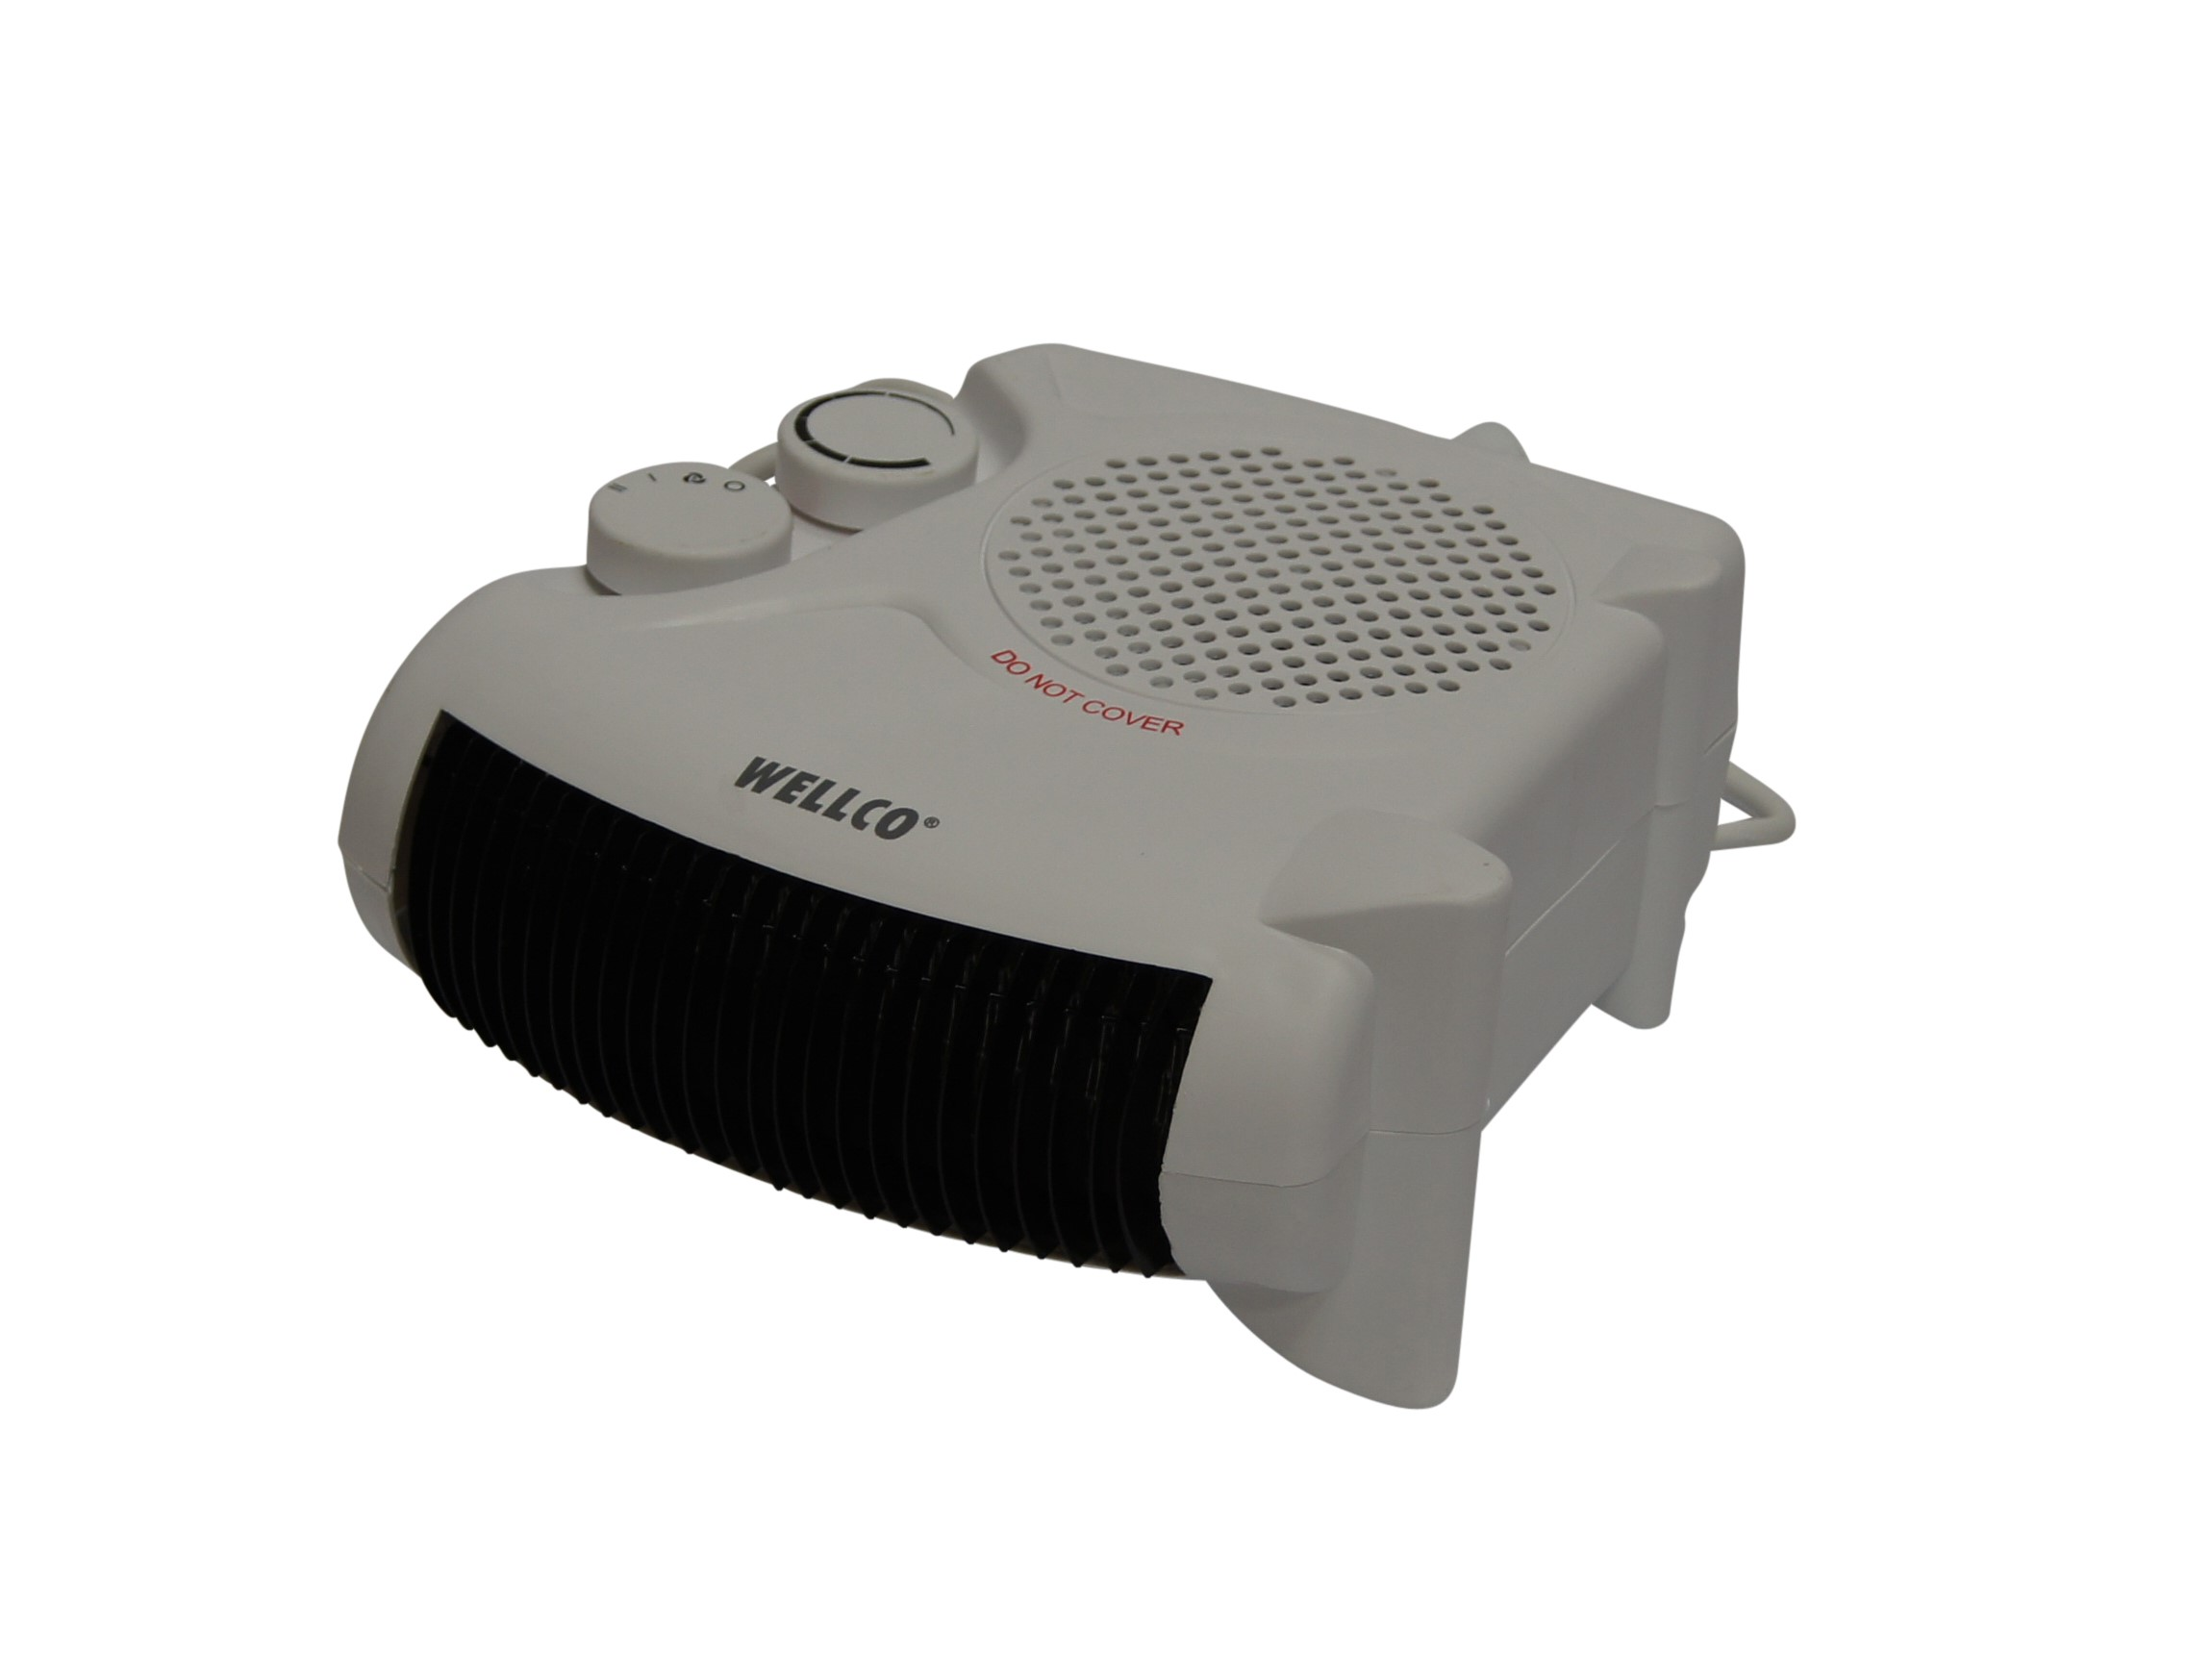 2kW 240v Fan Heater With 2 Heat Settings, Thermostat and Overheat Protection